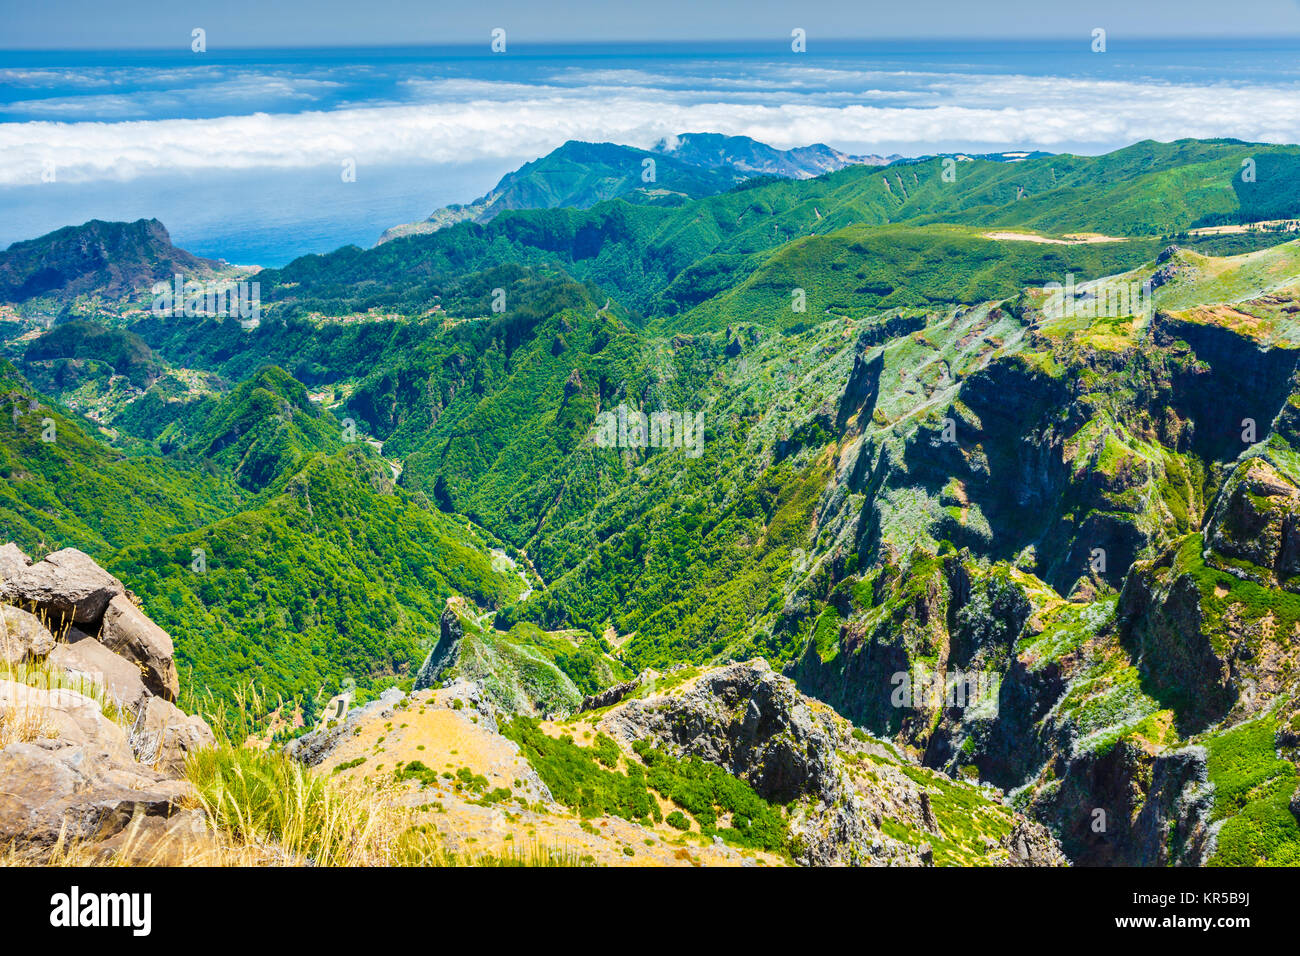 Mountain view. - Stock Image